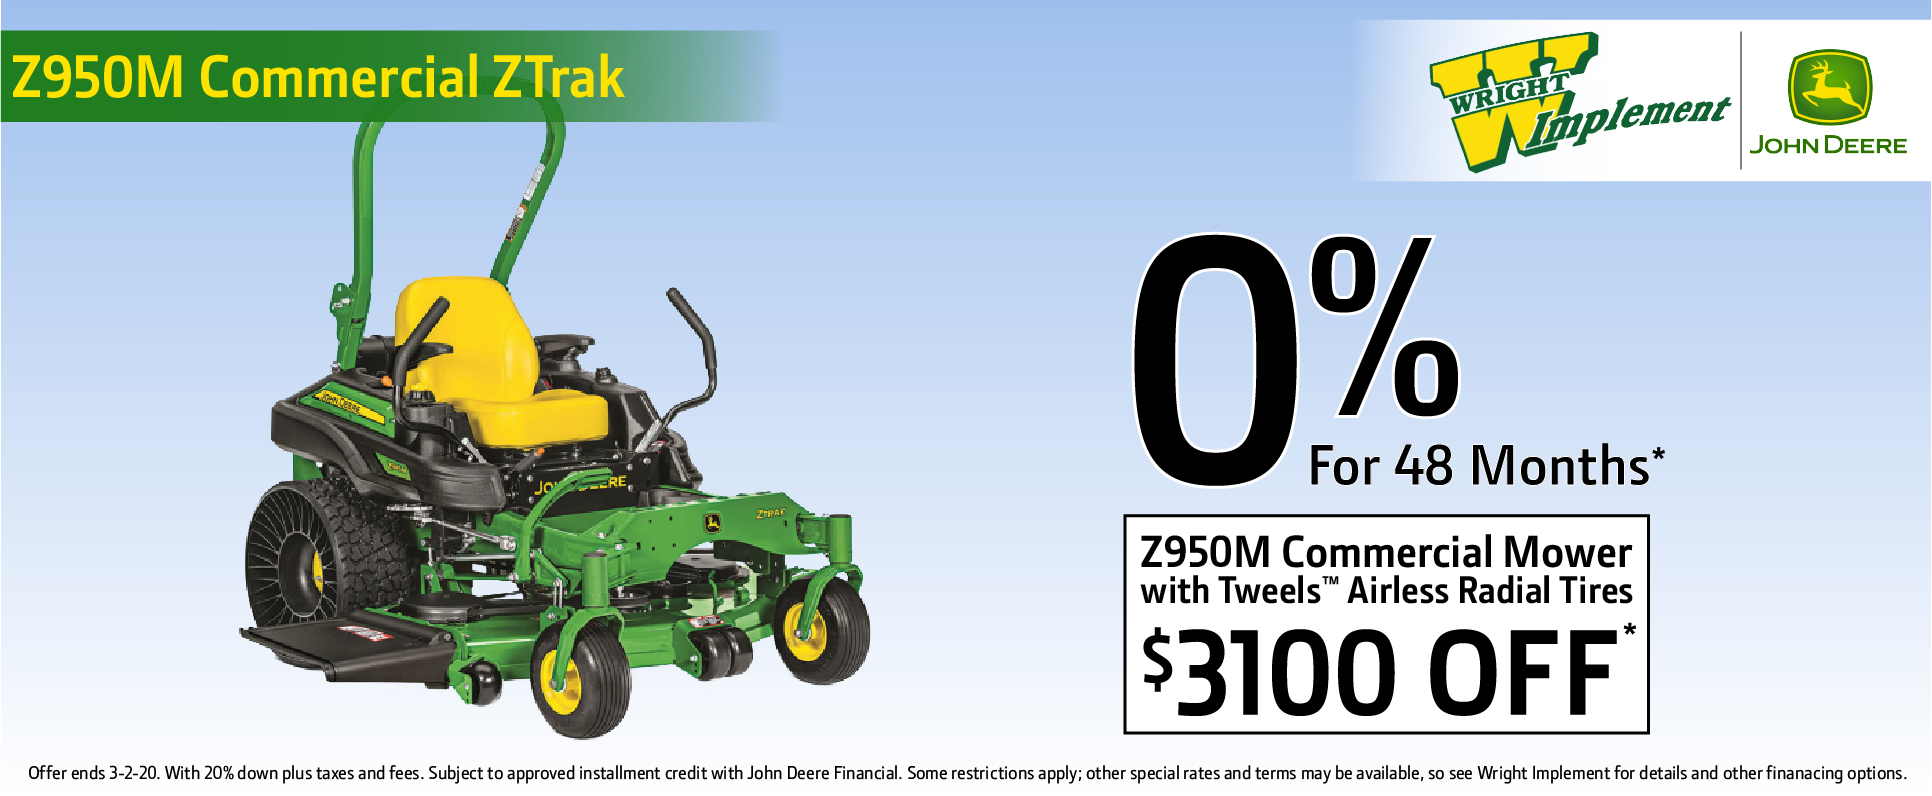 Z950M Commercial Mower w/ tweel airless radial tires. $3,100 off 0% for 48 mo